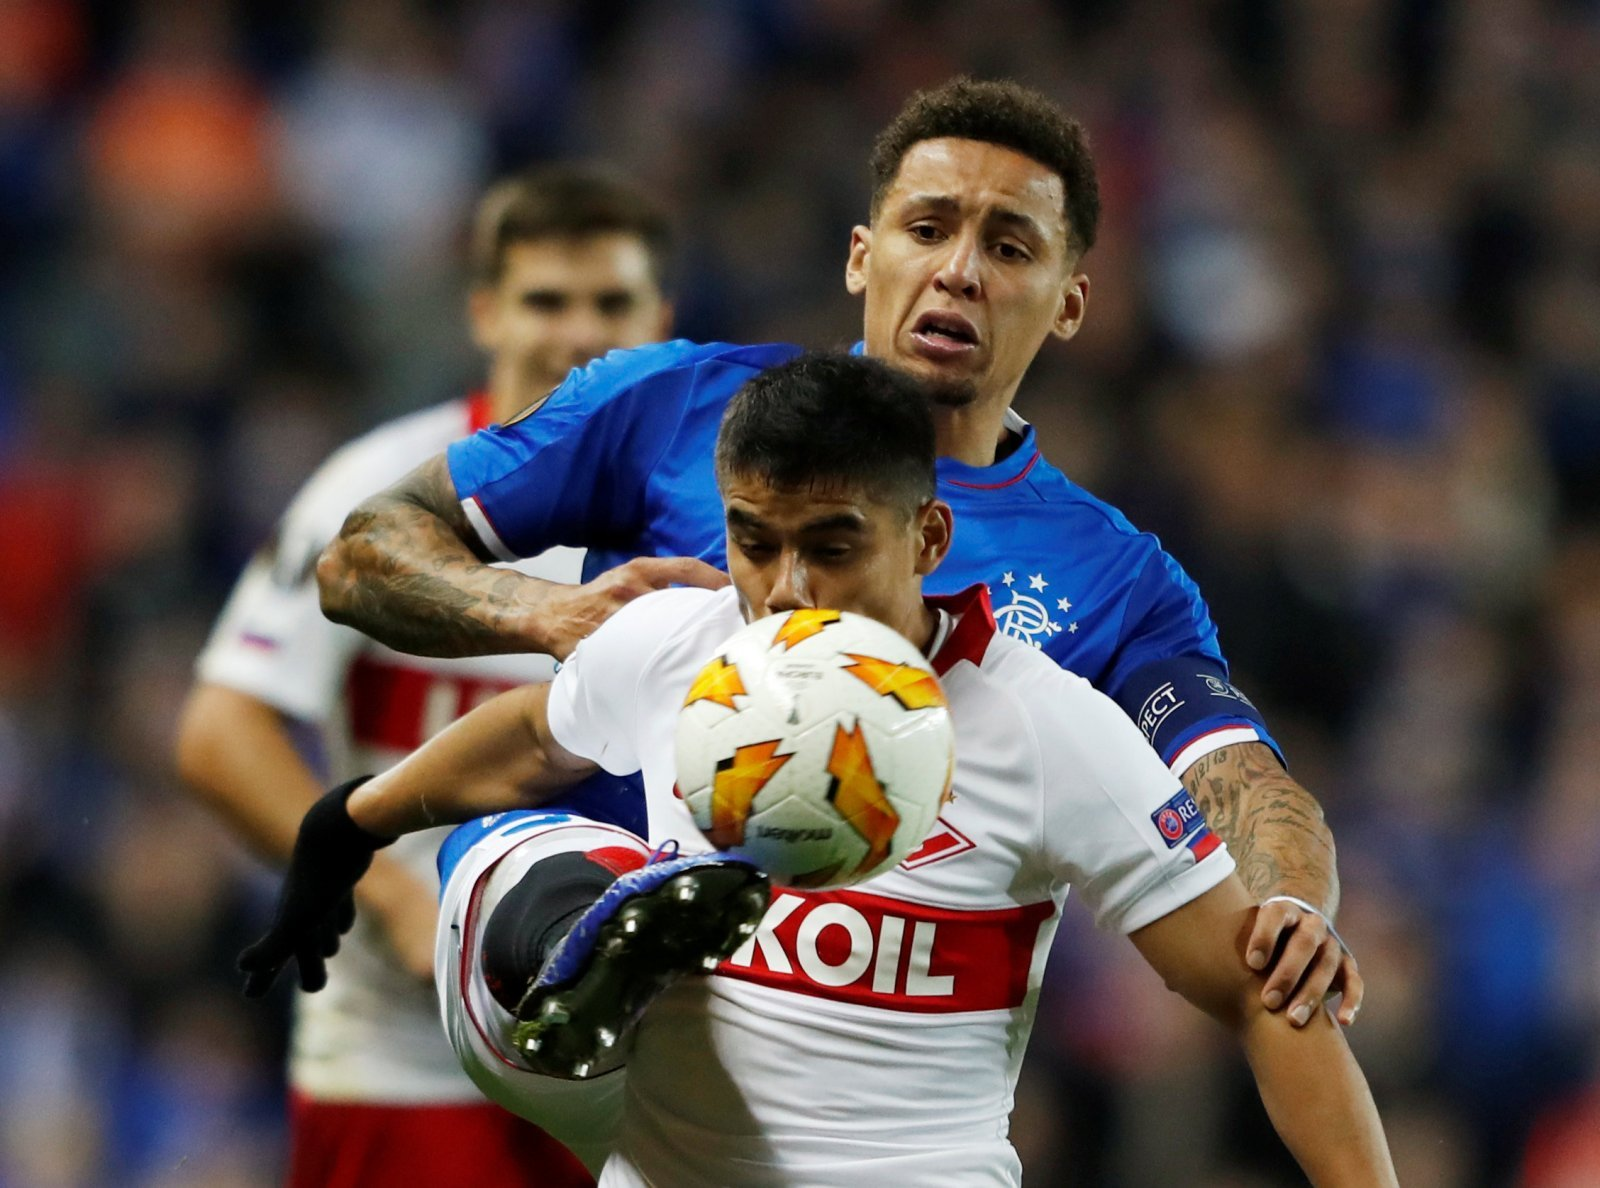 Rangers fans on Twitter really weren't pleased with James Tavernier's Europa League performance